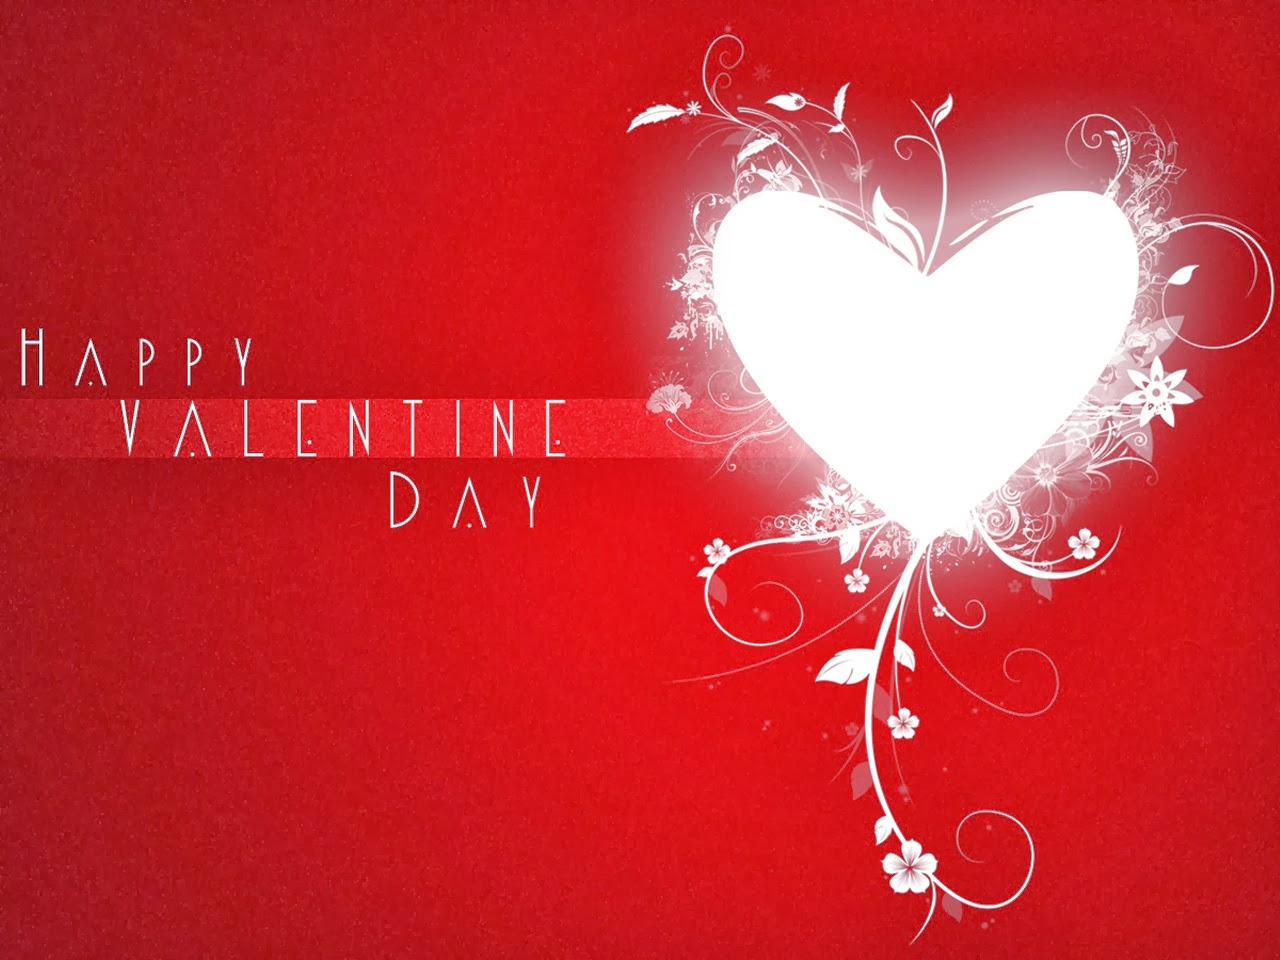 Valentines Day HD Wallpapers 2016 for Desktop 1280x960